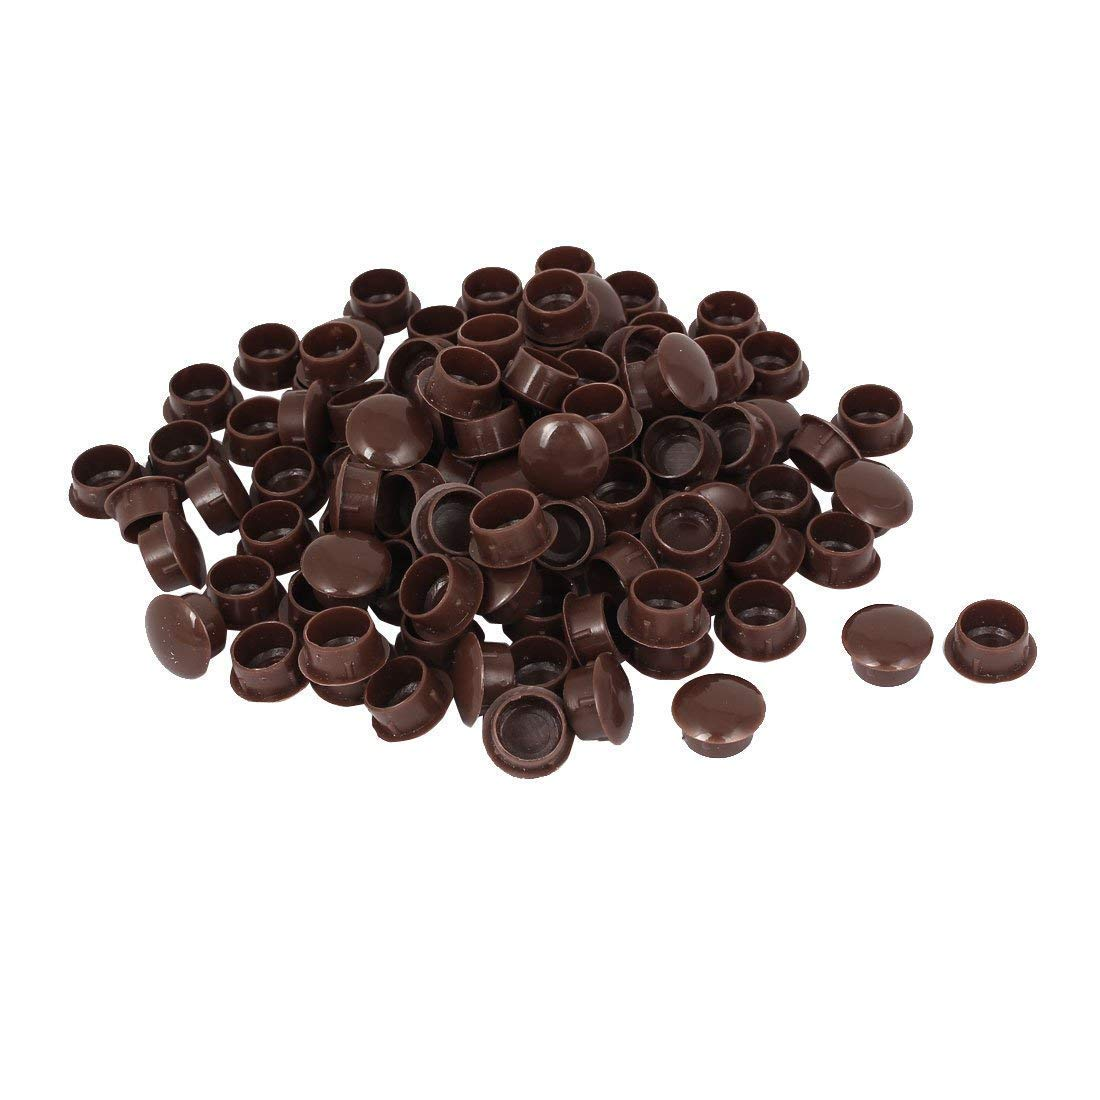 15mm Diameter Hole Brown Plastic Press On Furniture Screw Cap Covers 100 Pcs